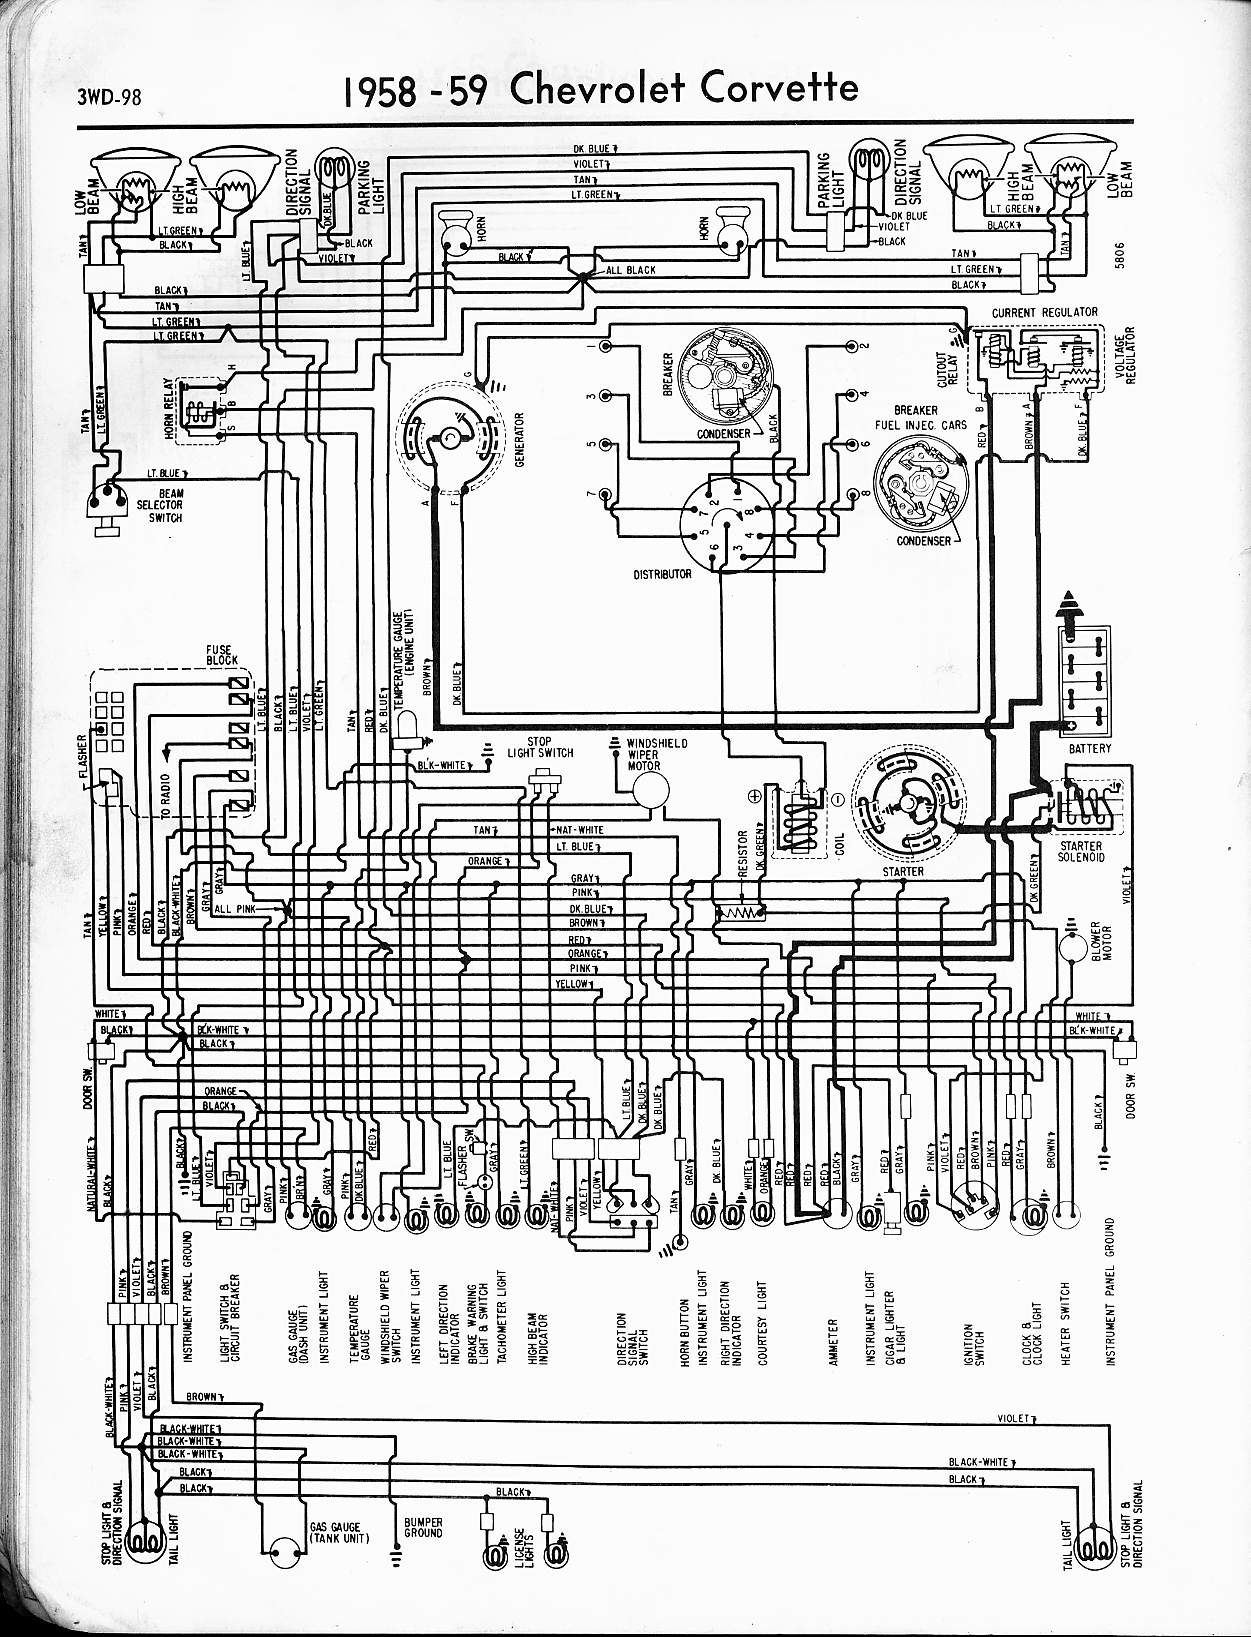 2004 Chevy Impala Engine Diagram Great Design Of Wiring 3800 Horn Detailed Schematics Rh Jppastryarts Com 2006 Transmission